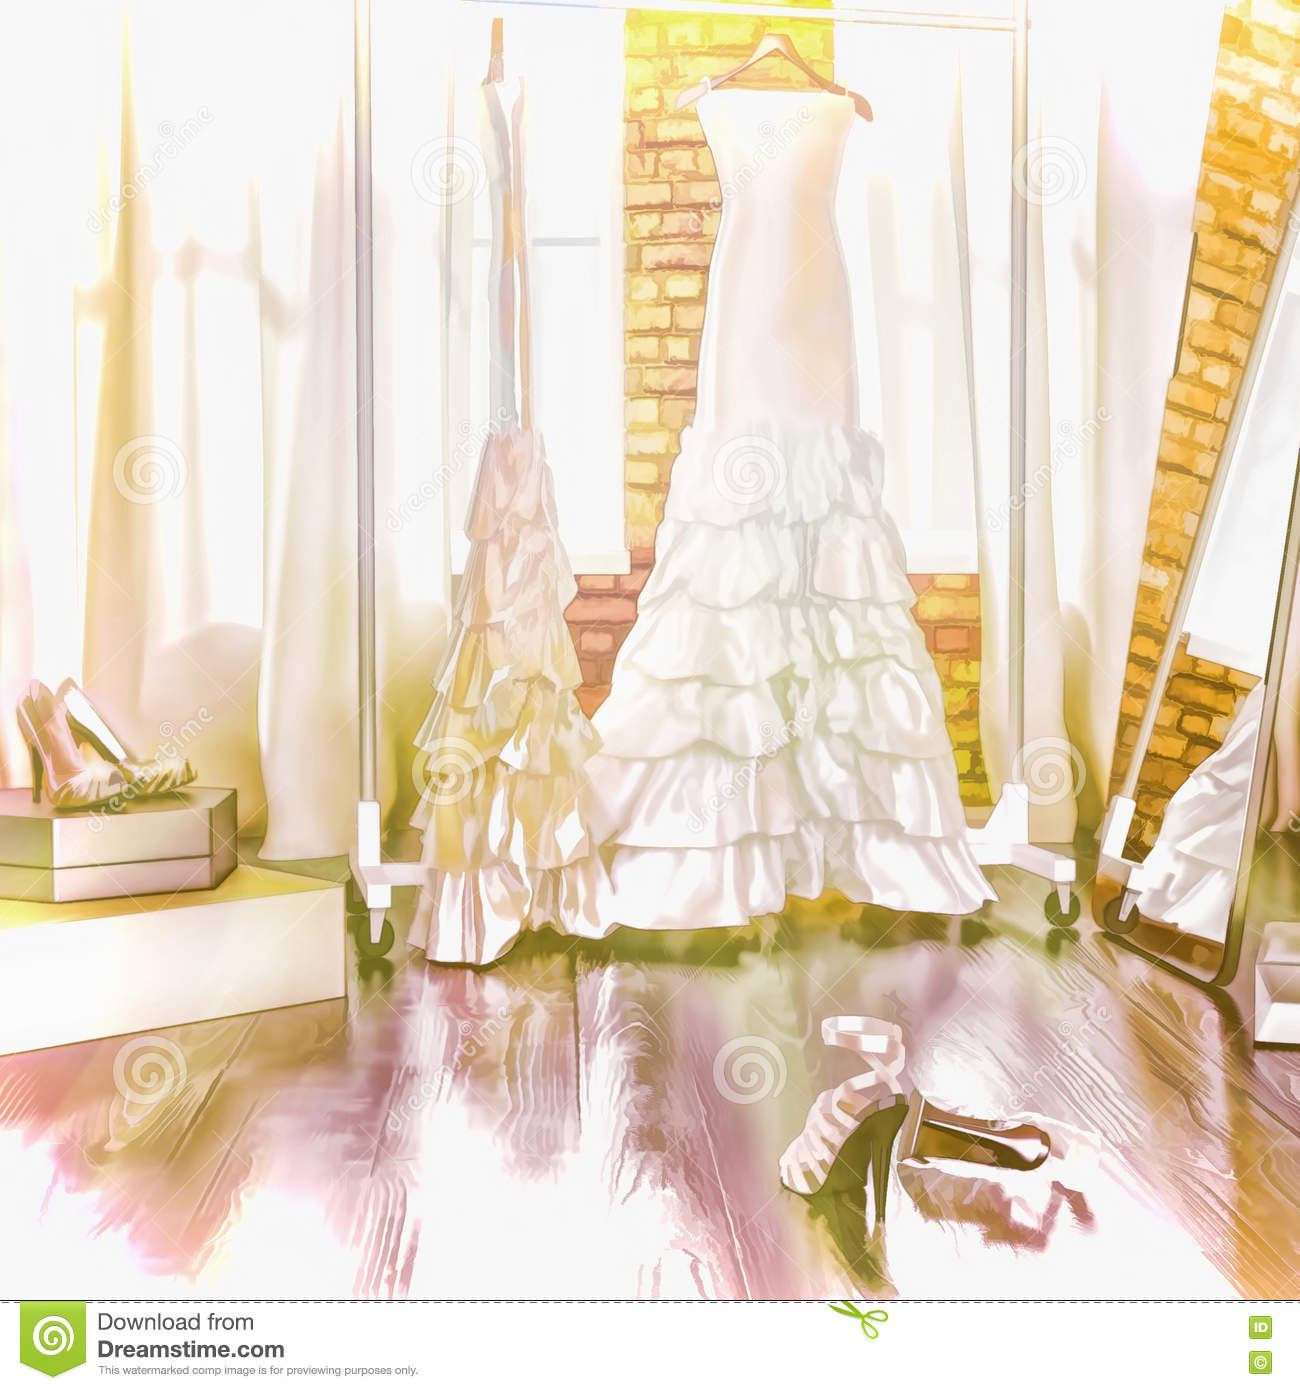 Dress Of The Bride. In A Fitting Room. Stock Illustration